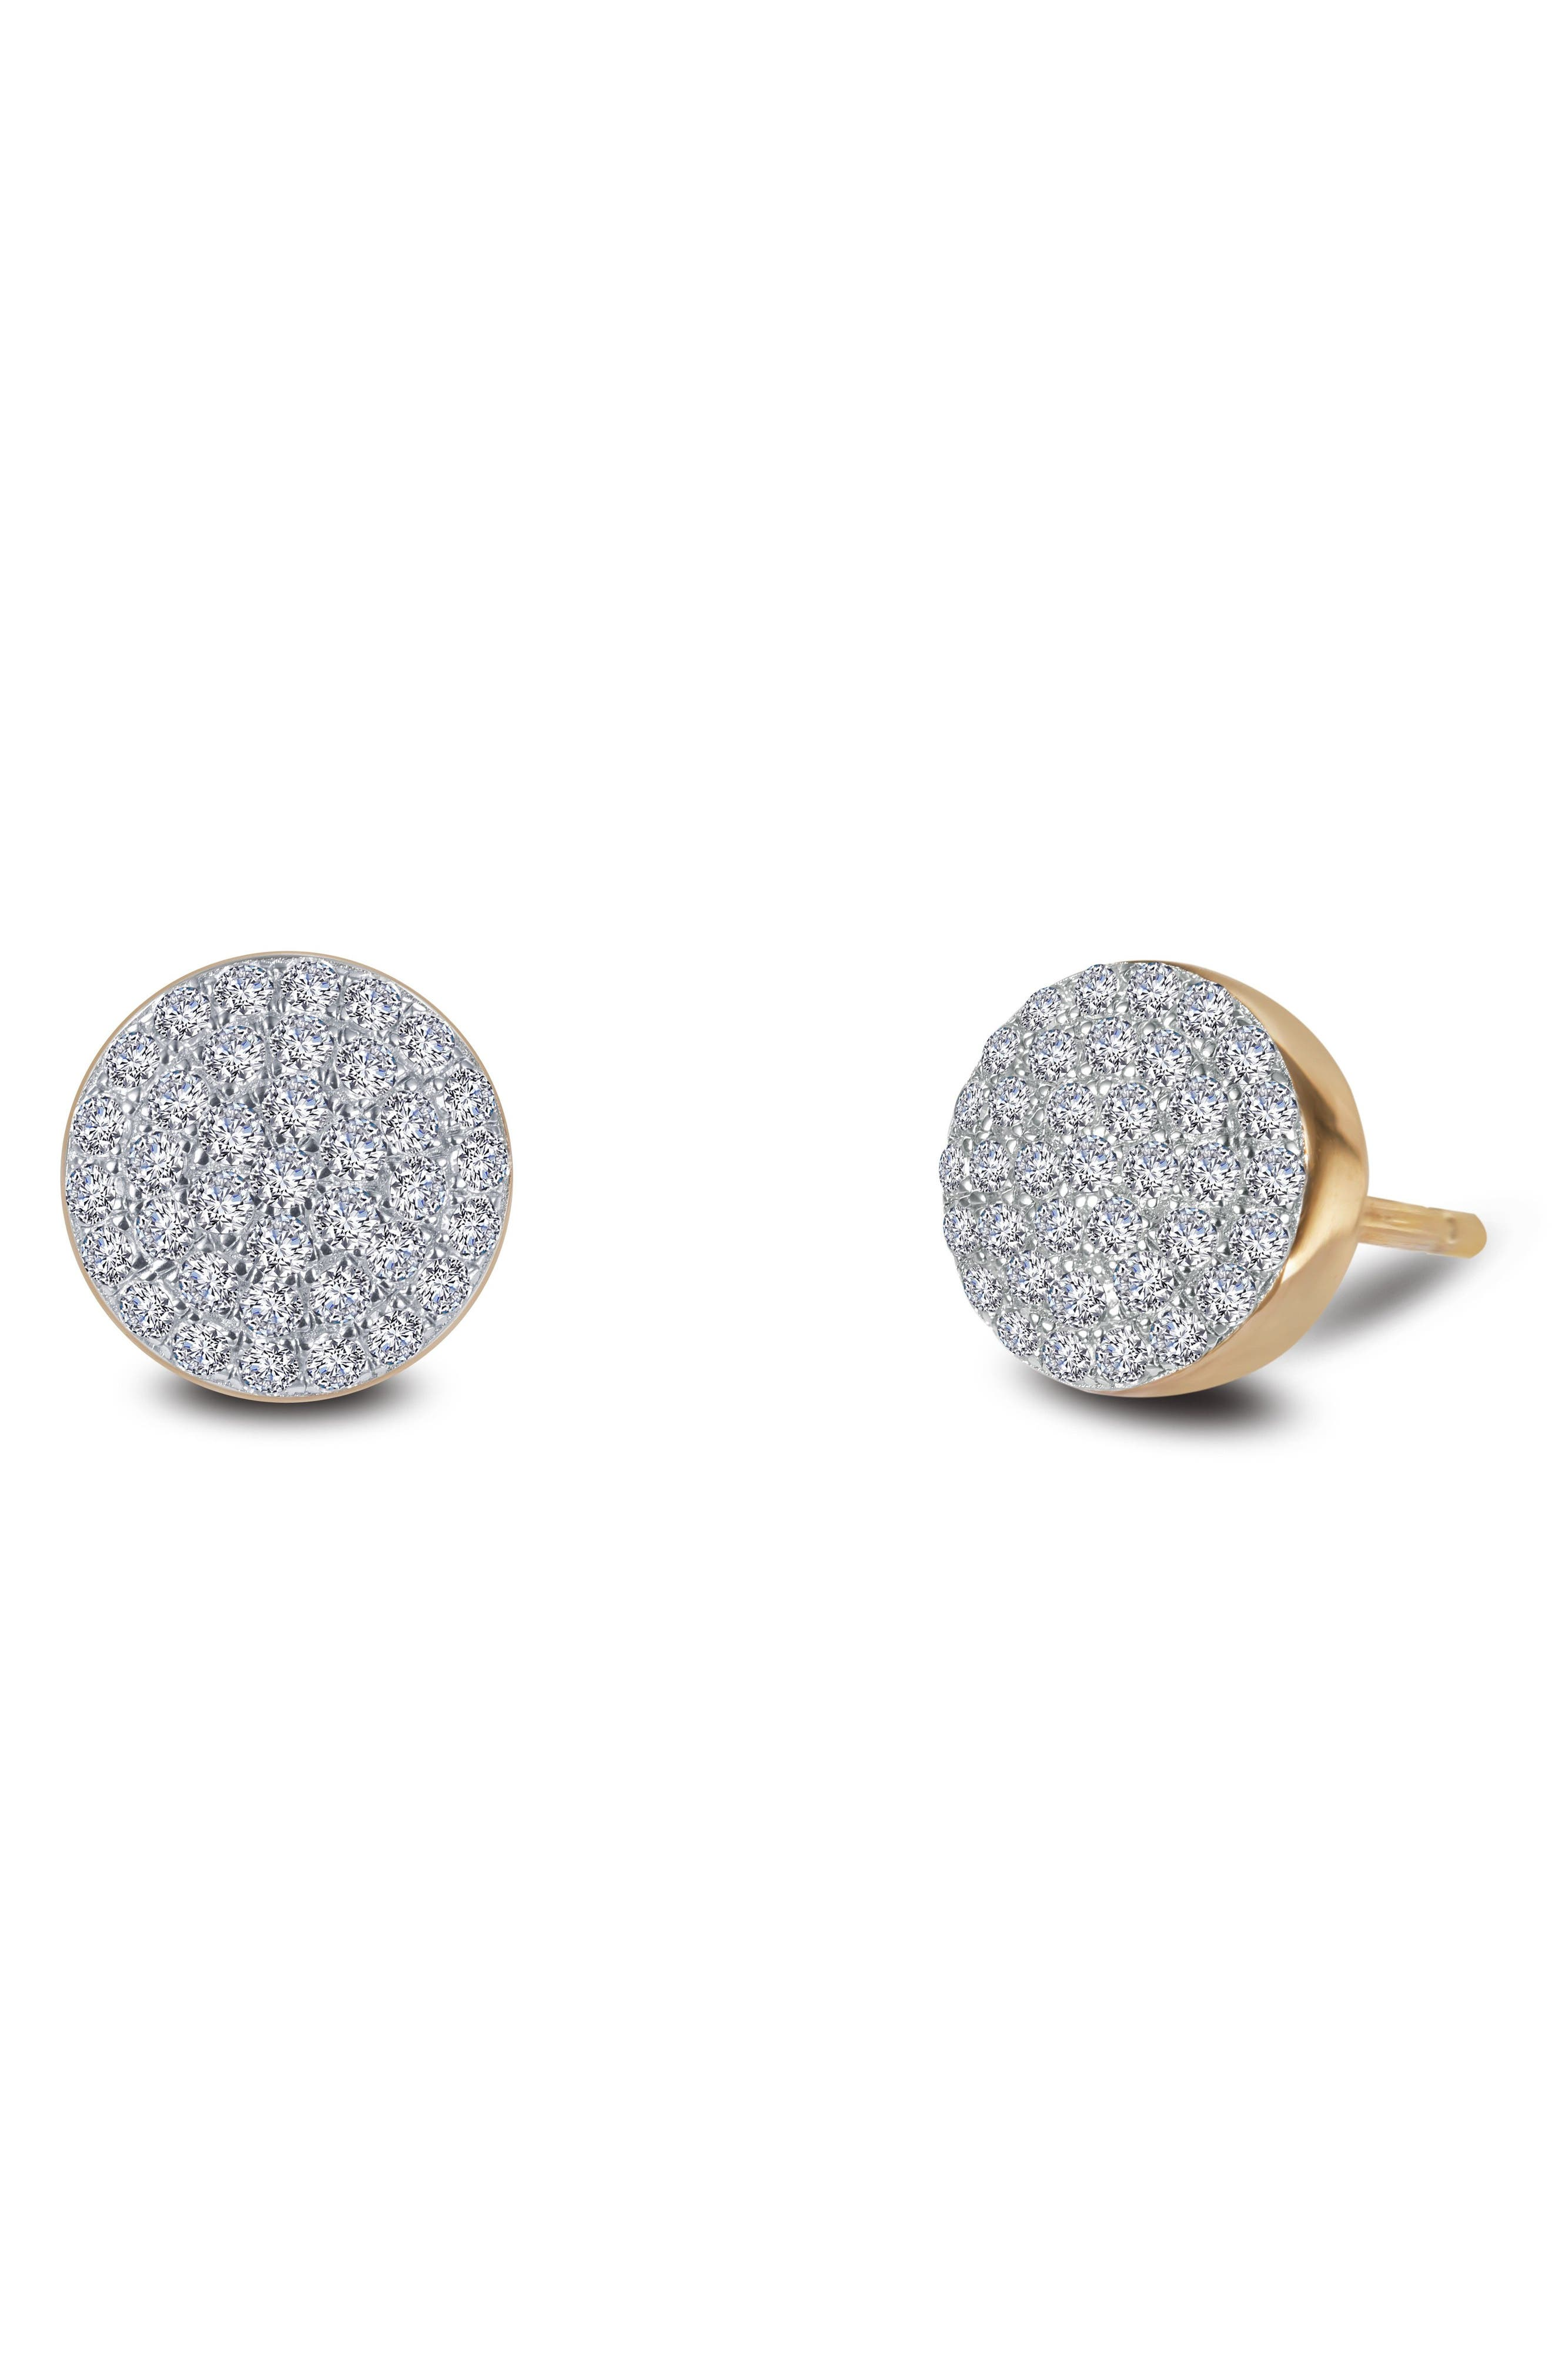 Two-Tone Pavé Button Stud Earrings,                             Main thumbnail 1, color,                             SILVER/ GOLD/ CLEAR